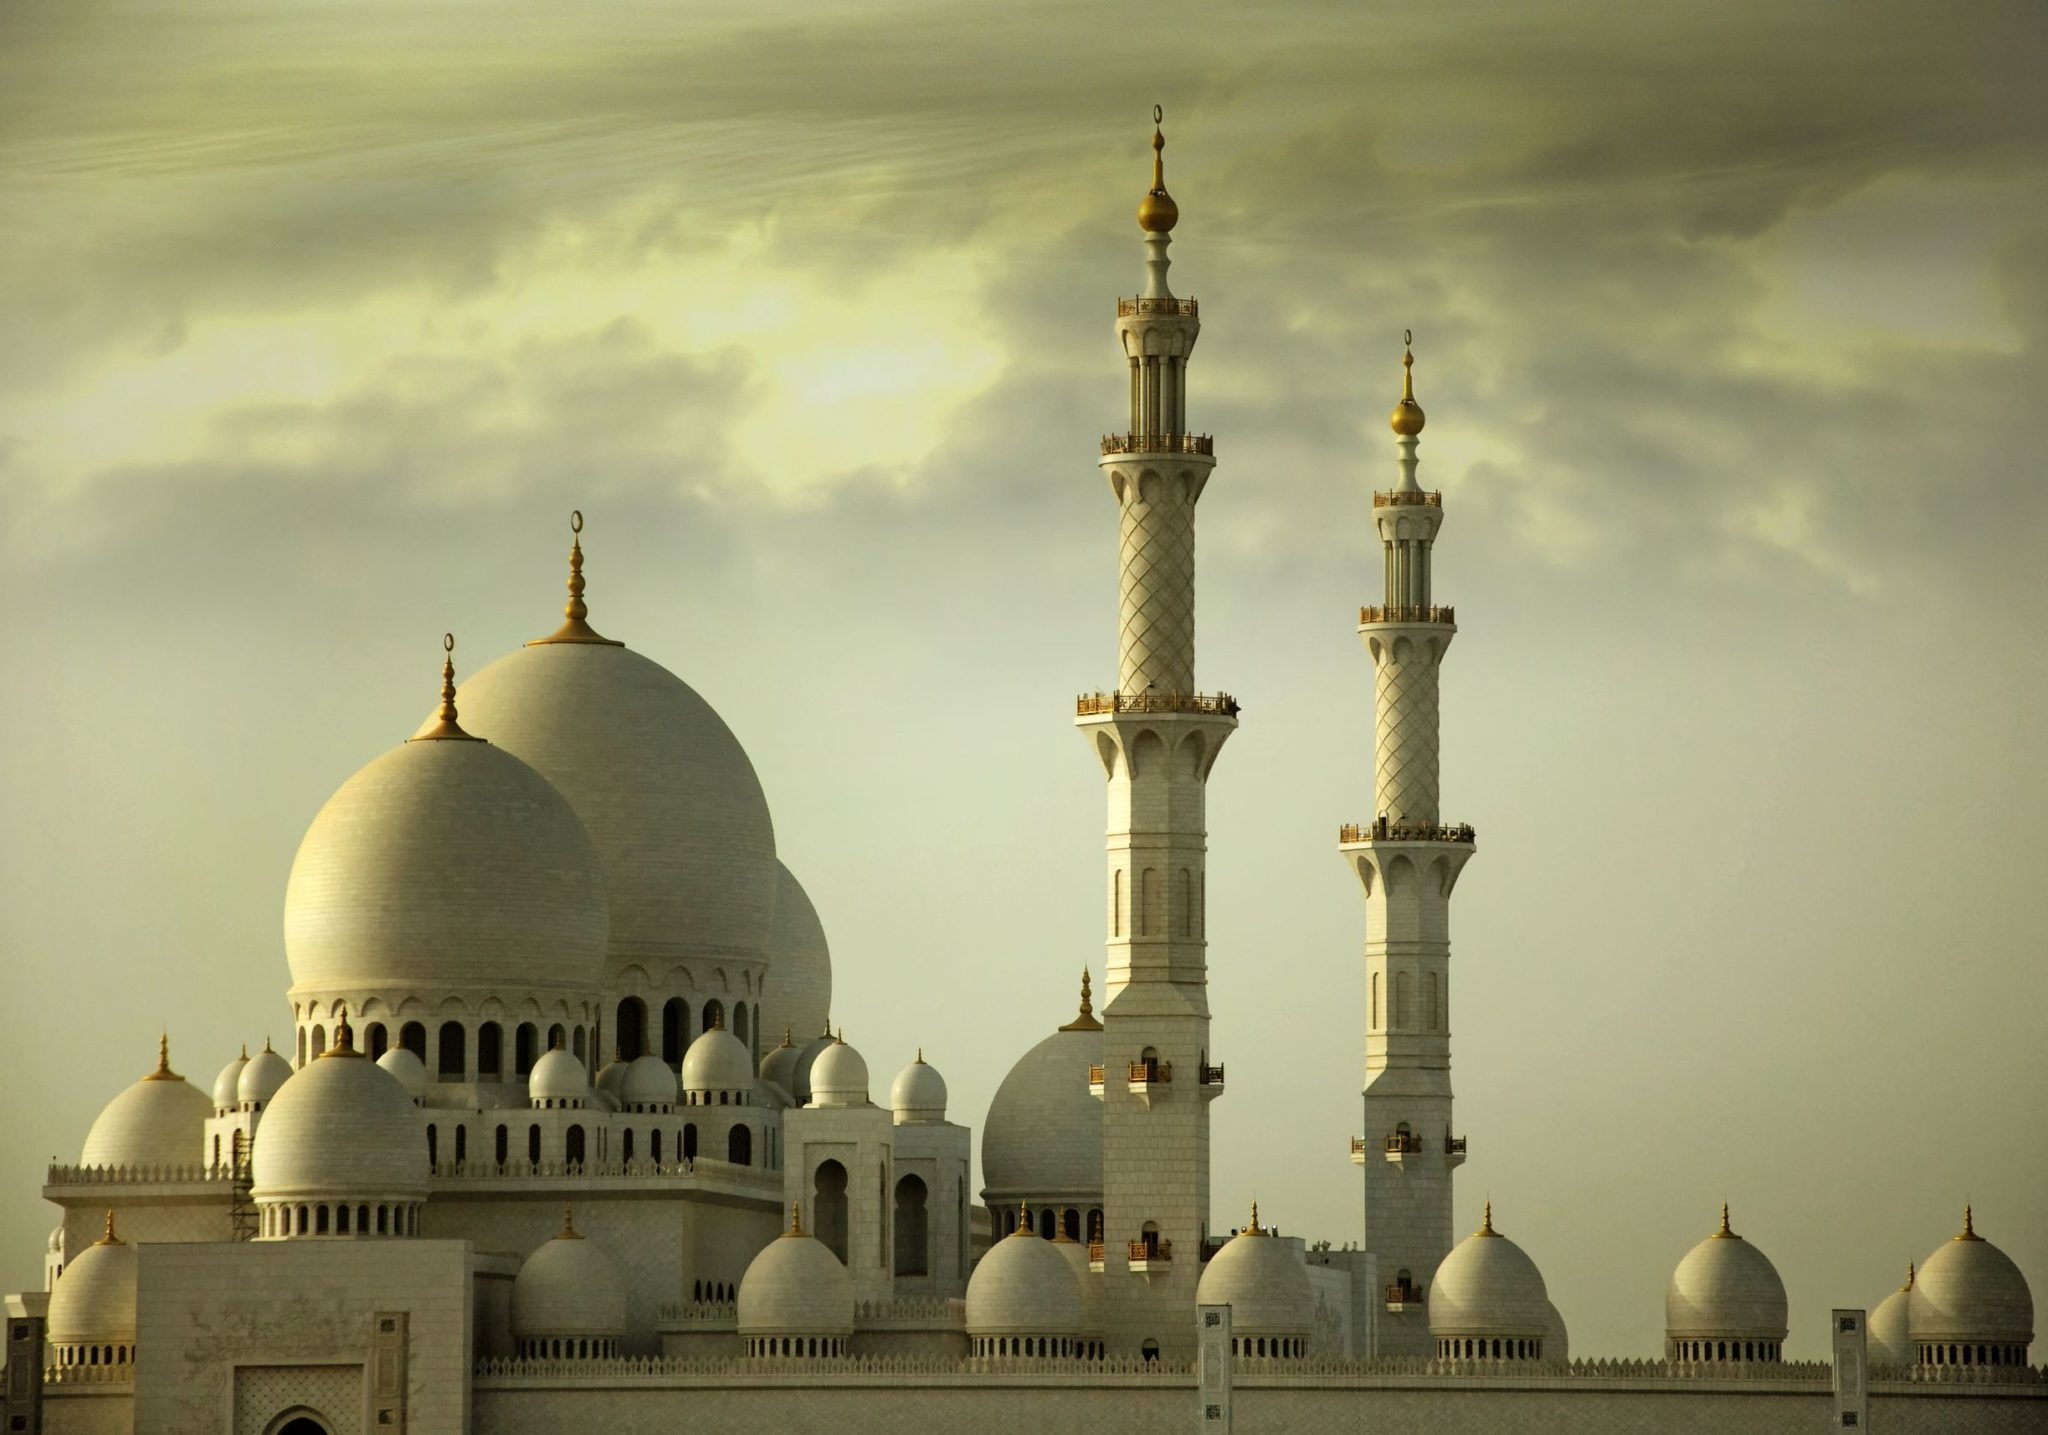 Grand Mosque, Sheikh Zayed Mosque, in Abu Dhabi, United Arab Emirates